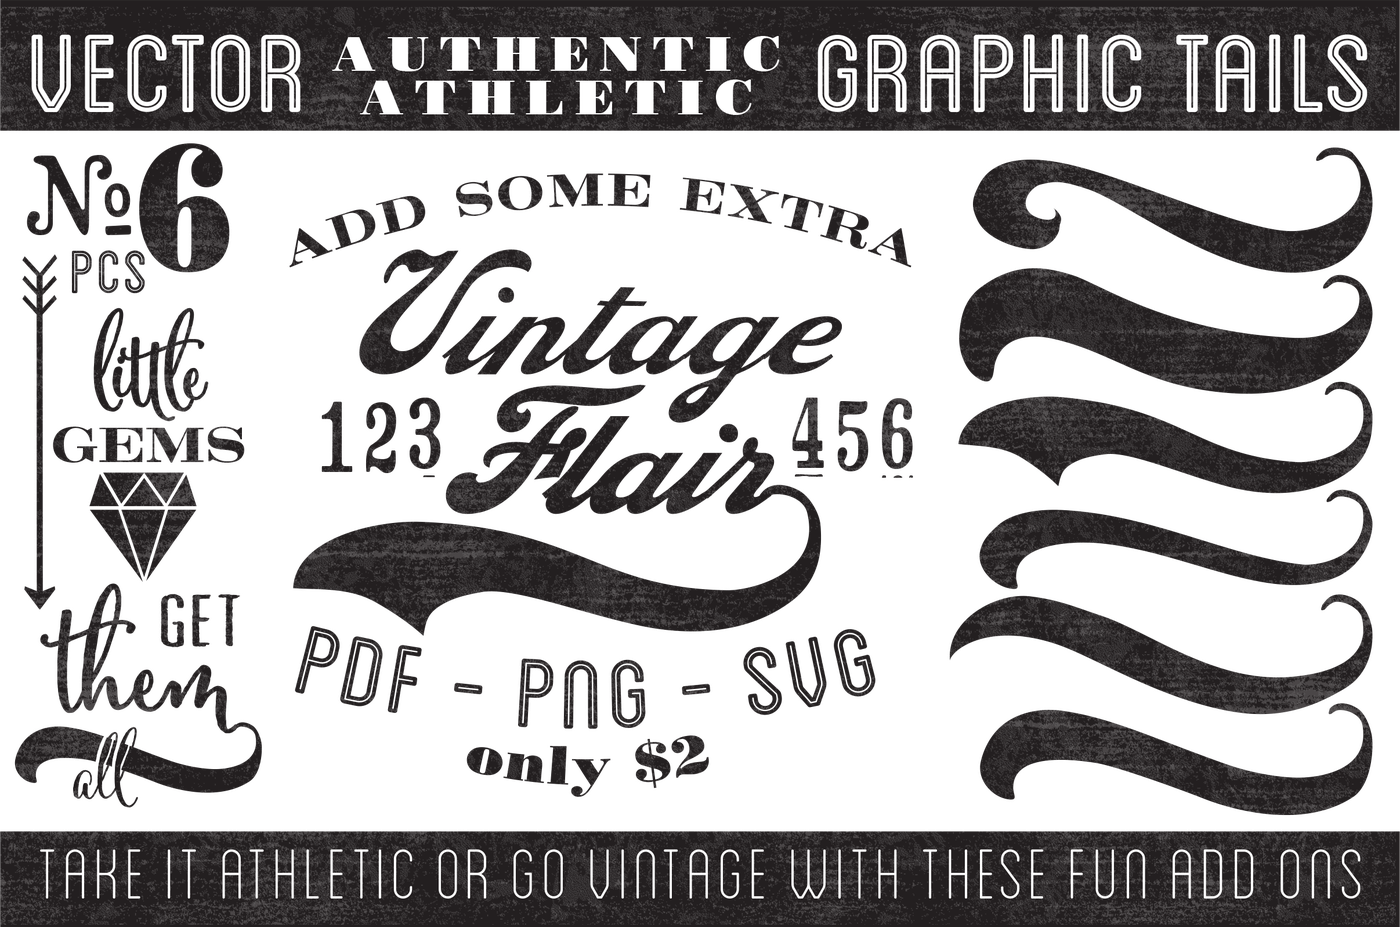 1400x927 Vintage Vector Graphic Tails By Nonna Illustration Amp Design